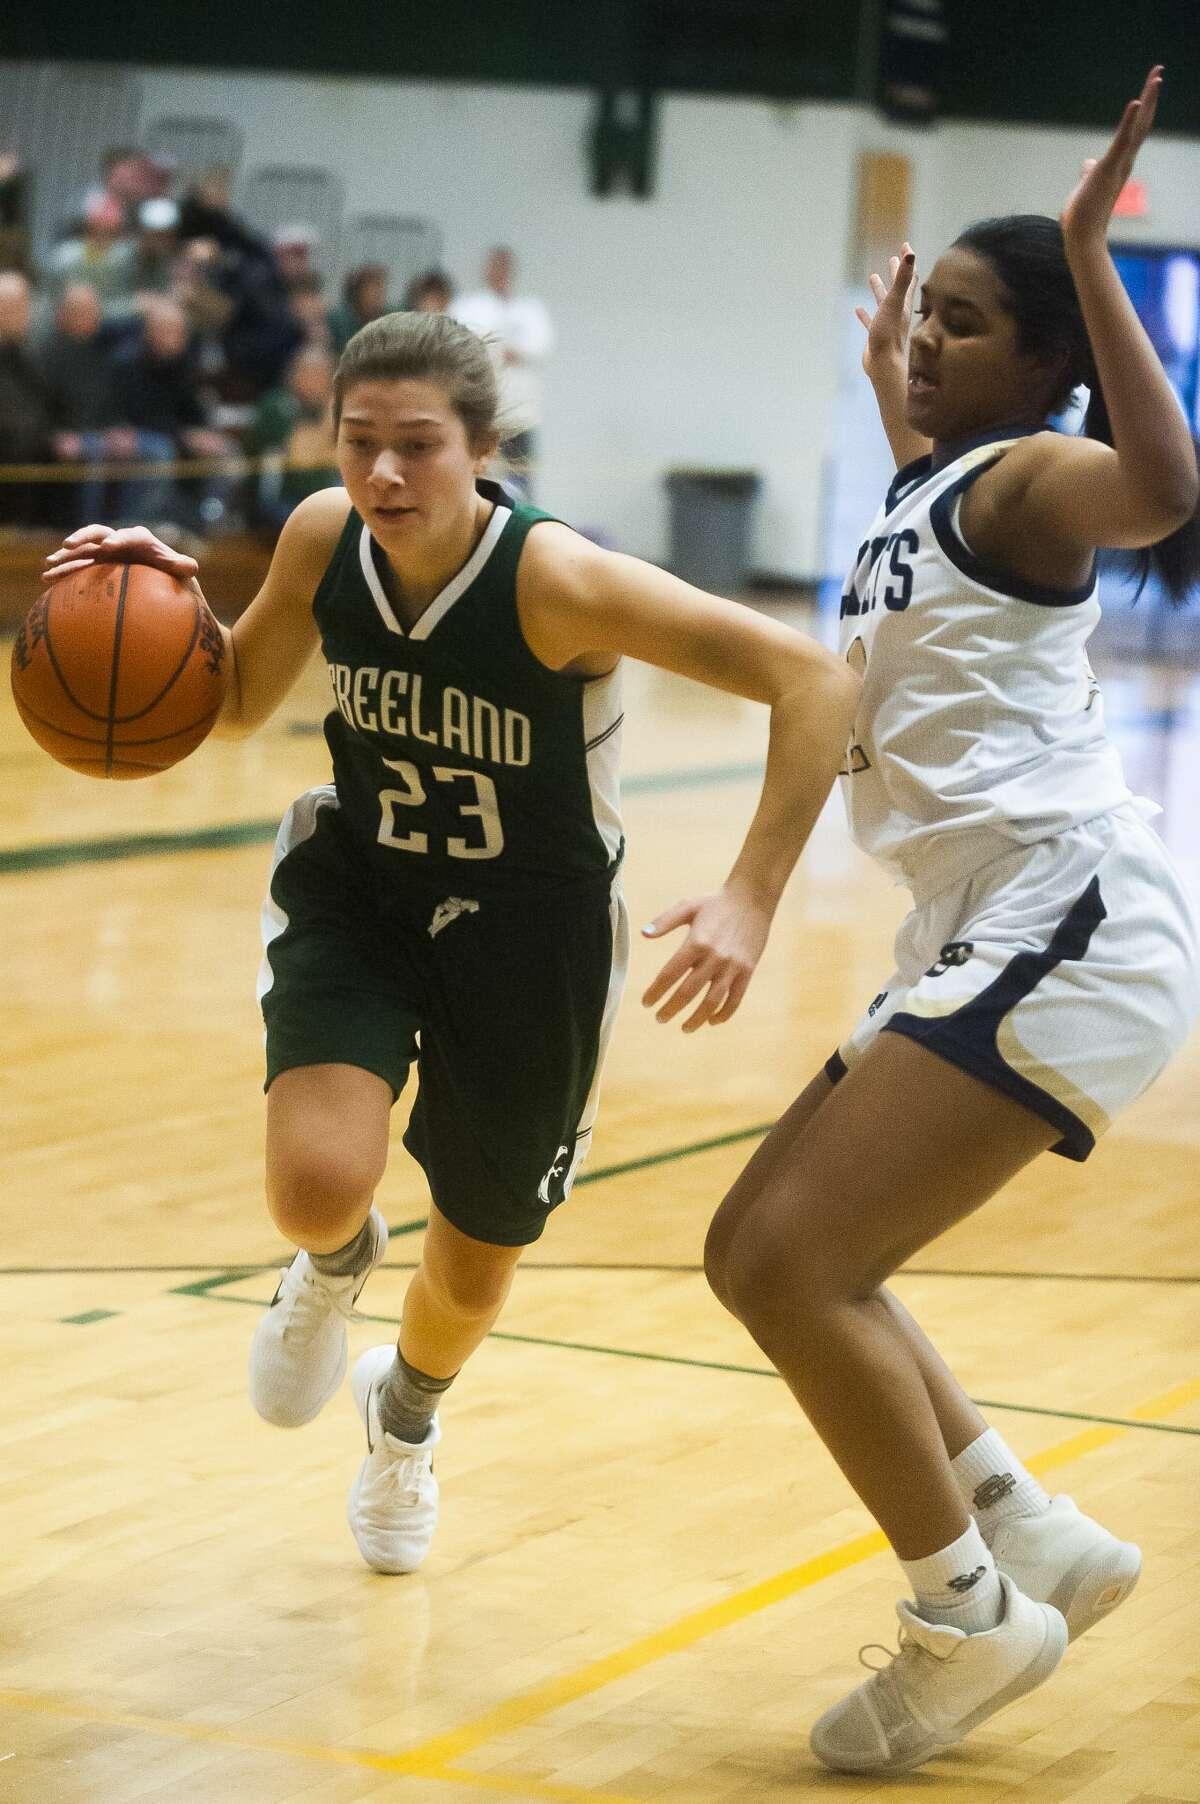 Freeland junior Alyssa Argyle dribbles down the court while Detroit Country Day junior Adrian Folks guards her during their Class B state quarterfinals game on Tuesday, March 13, 2018 at West Bloomfield High School. (Katy Kildee/kkildee@mdn.net)